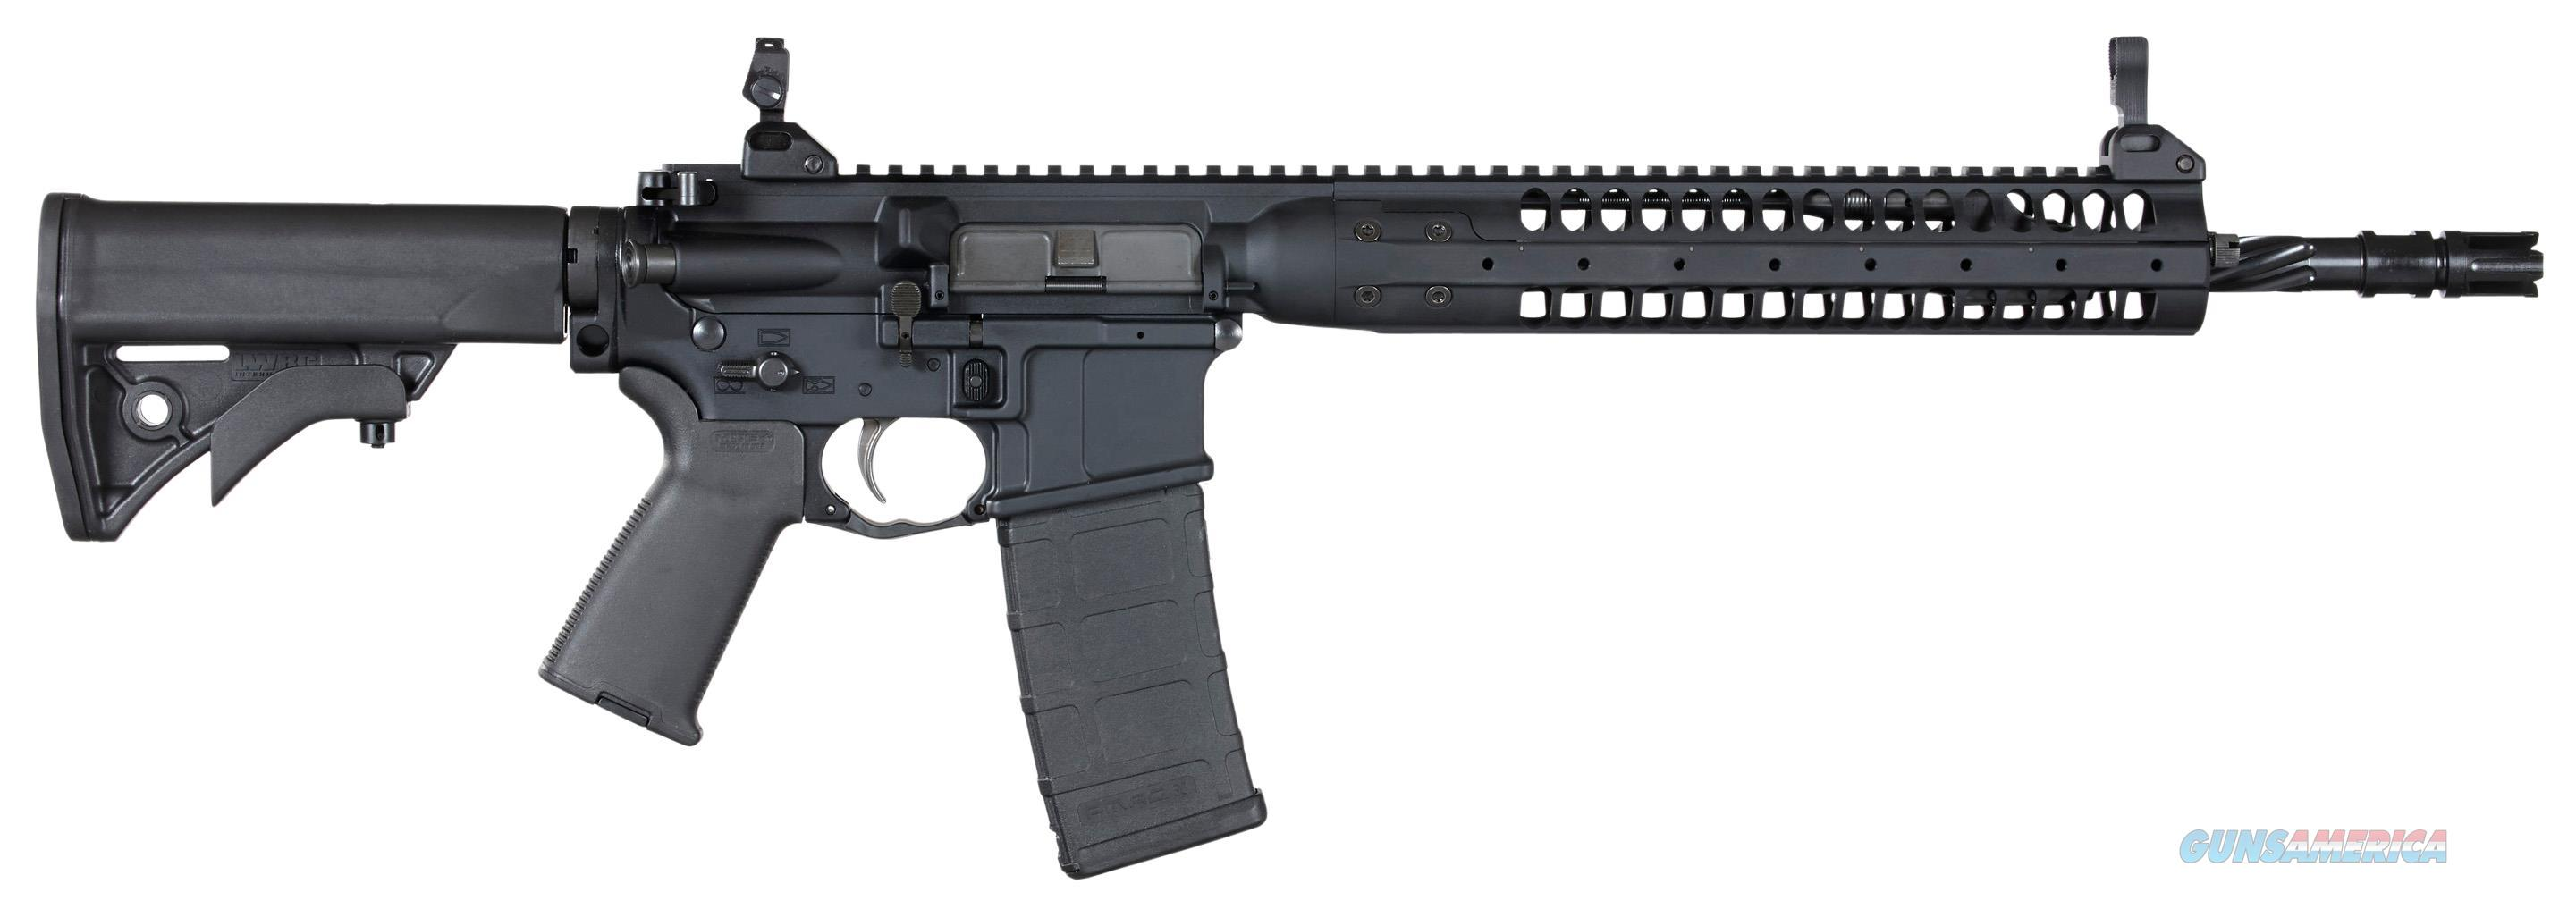 "Lwrc Icr5b16spr Individual Carbine Spr Semi-Automatic 223 Remington/5.56 Nato 16.1"" 30+1 Adjustable Black Stk Black ICR5B16SPR  Guns > Rifles > L Misc Rifles"